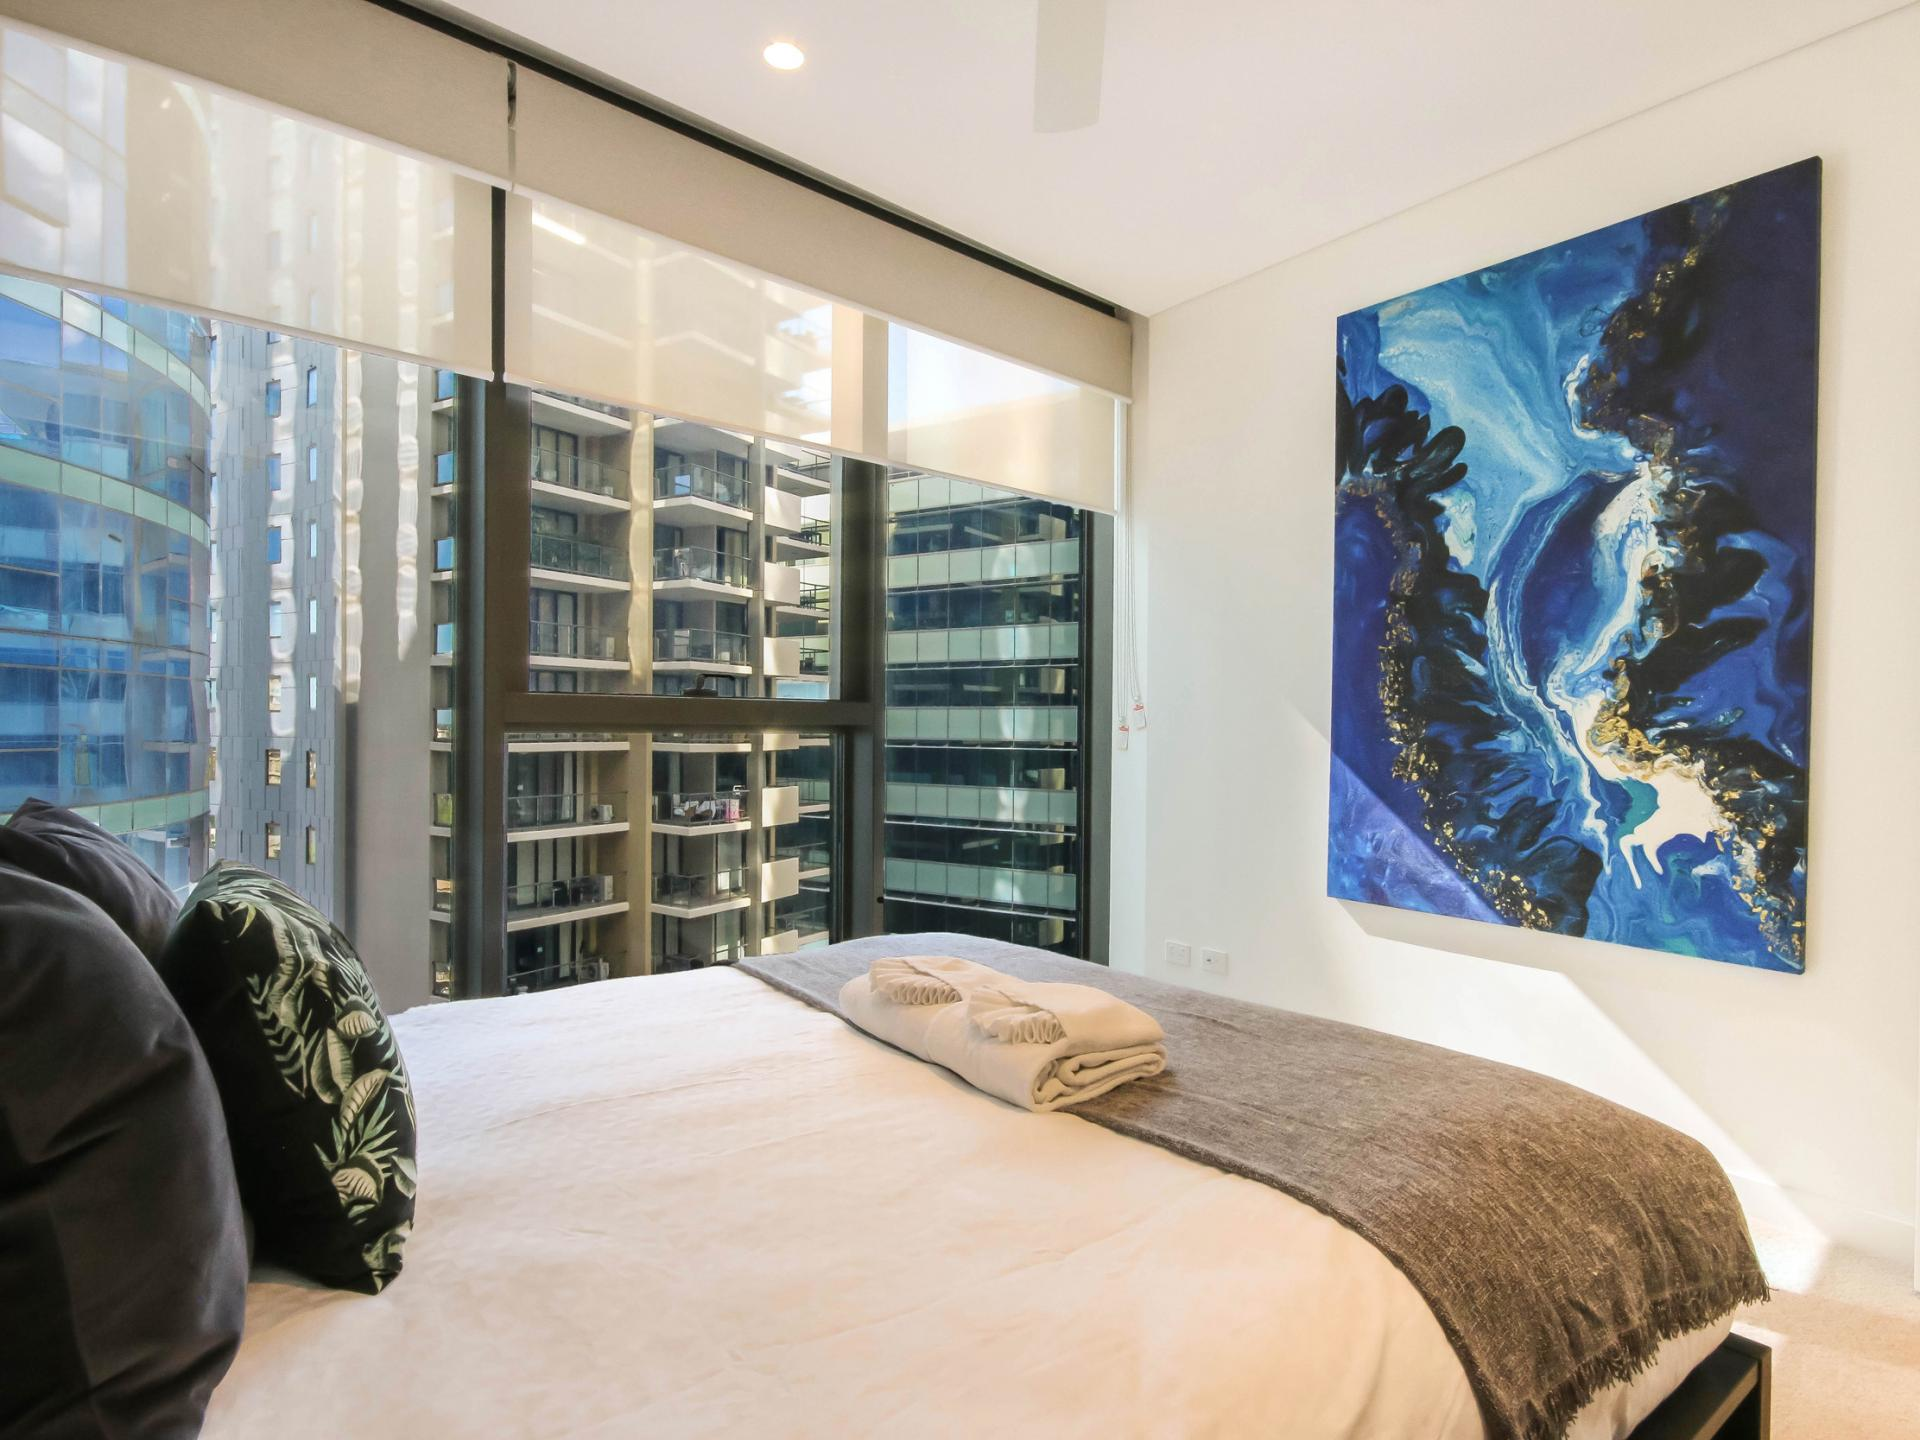 Bed at The Mary Street Apartment, Frog's Hollow, Brisbane